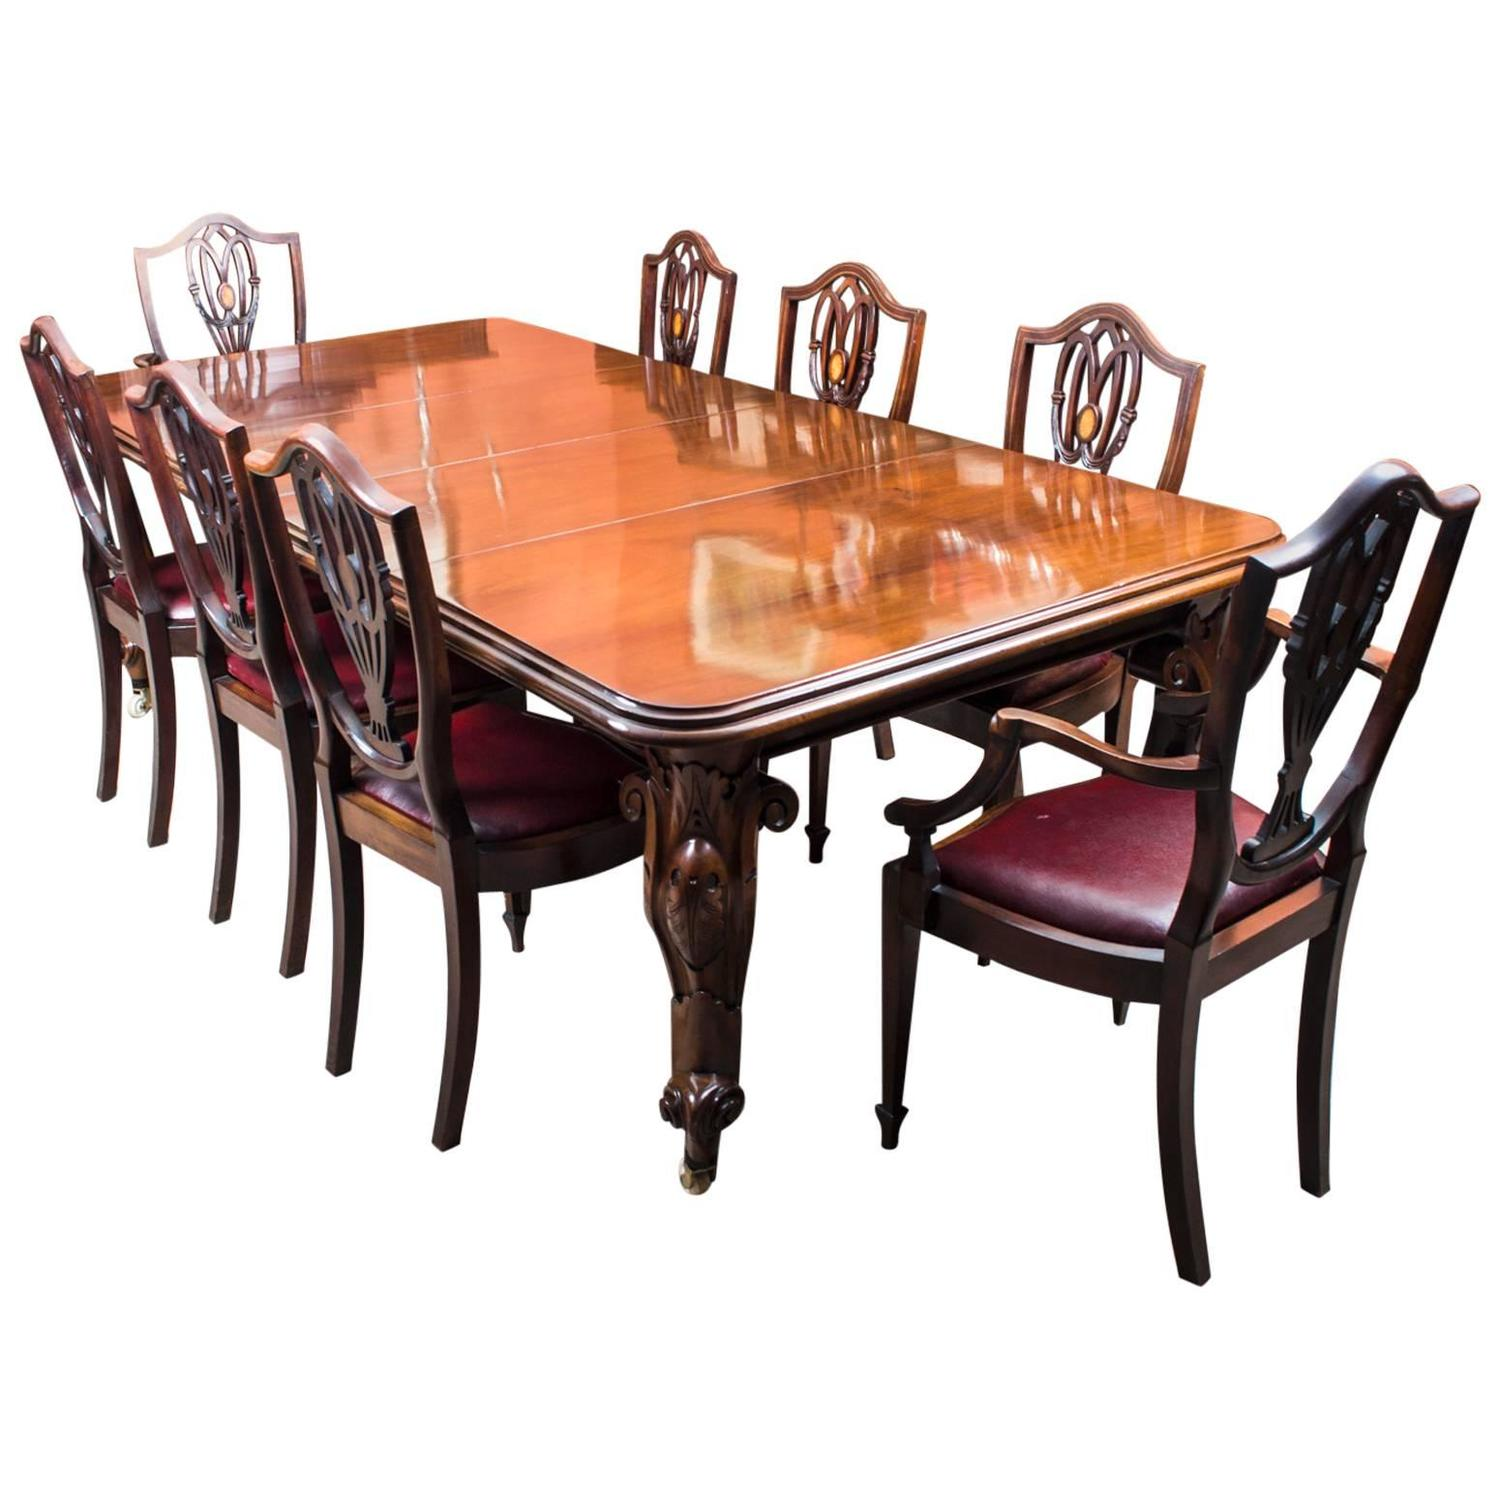 Antique Victorian Mahogany Dining Table 8 Chairs